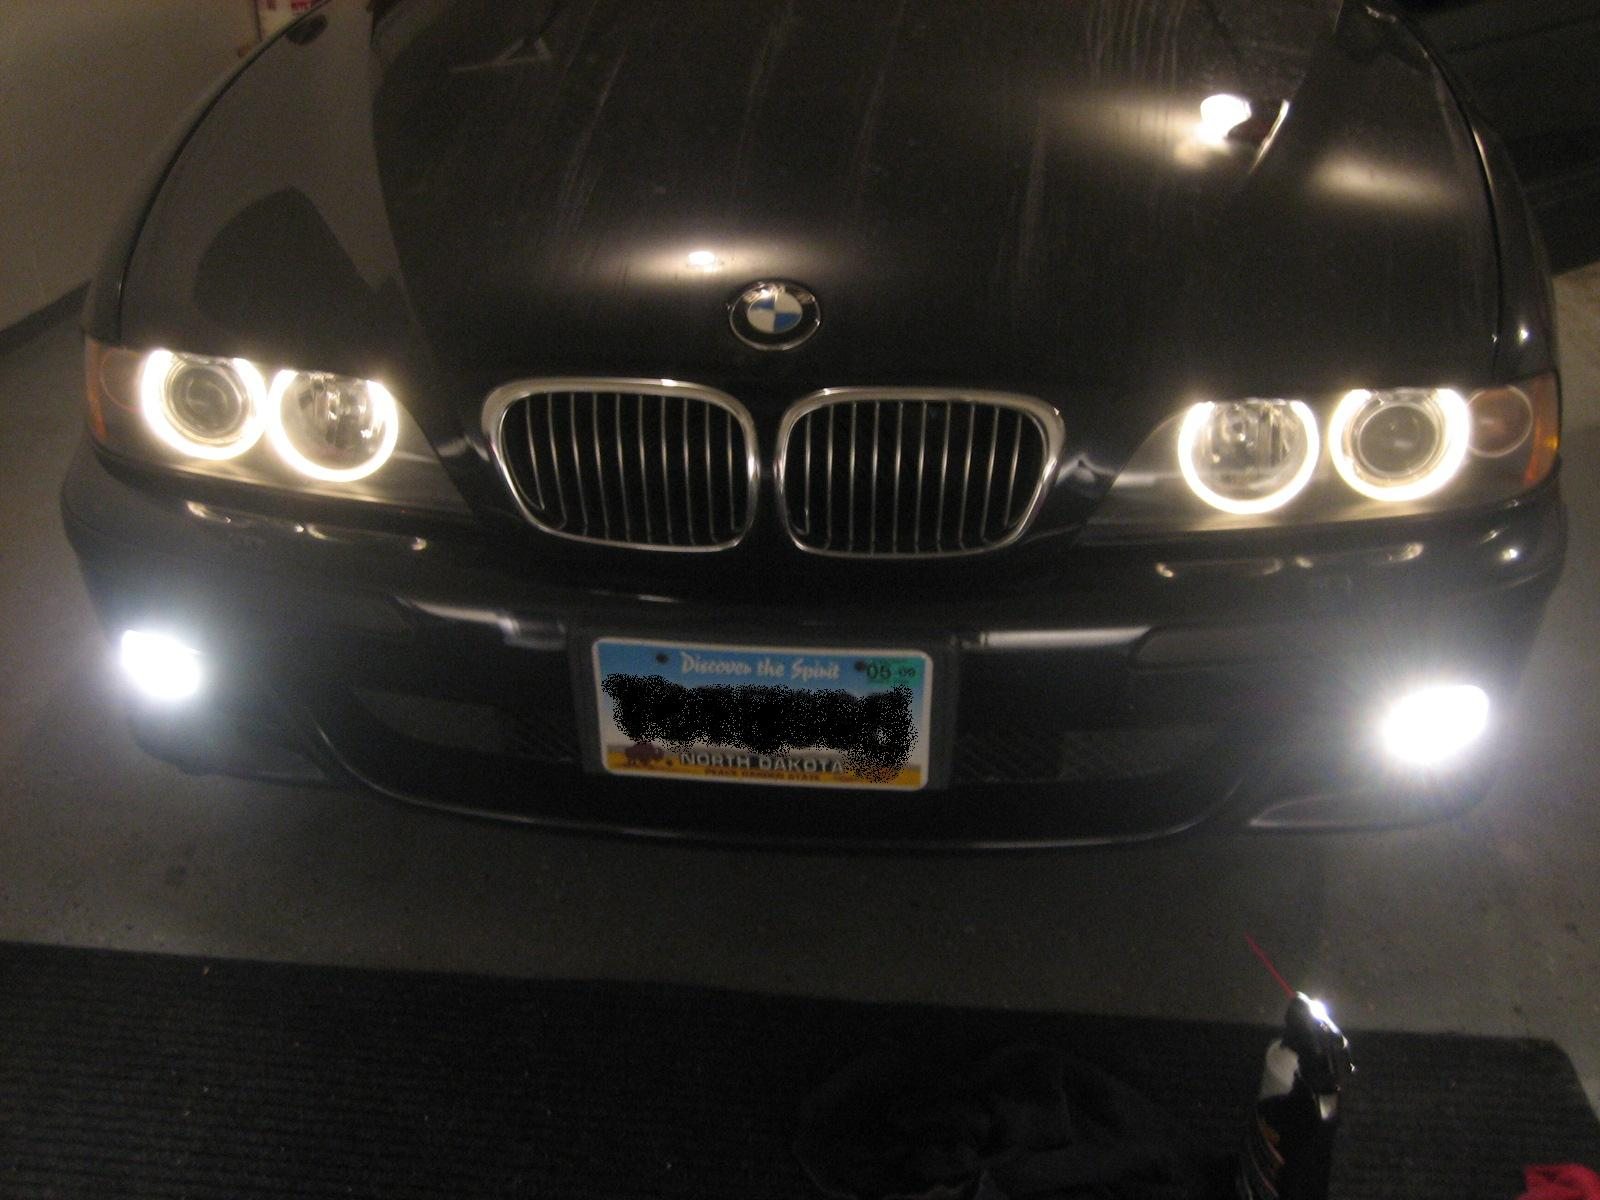 Fog Light Bulb Replacement for E39 M5 w/ Pics-final1.jpg